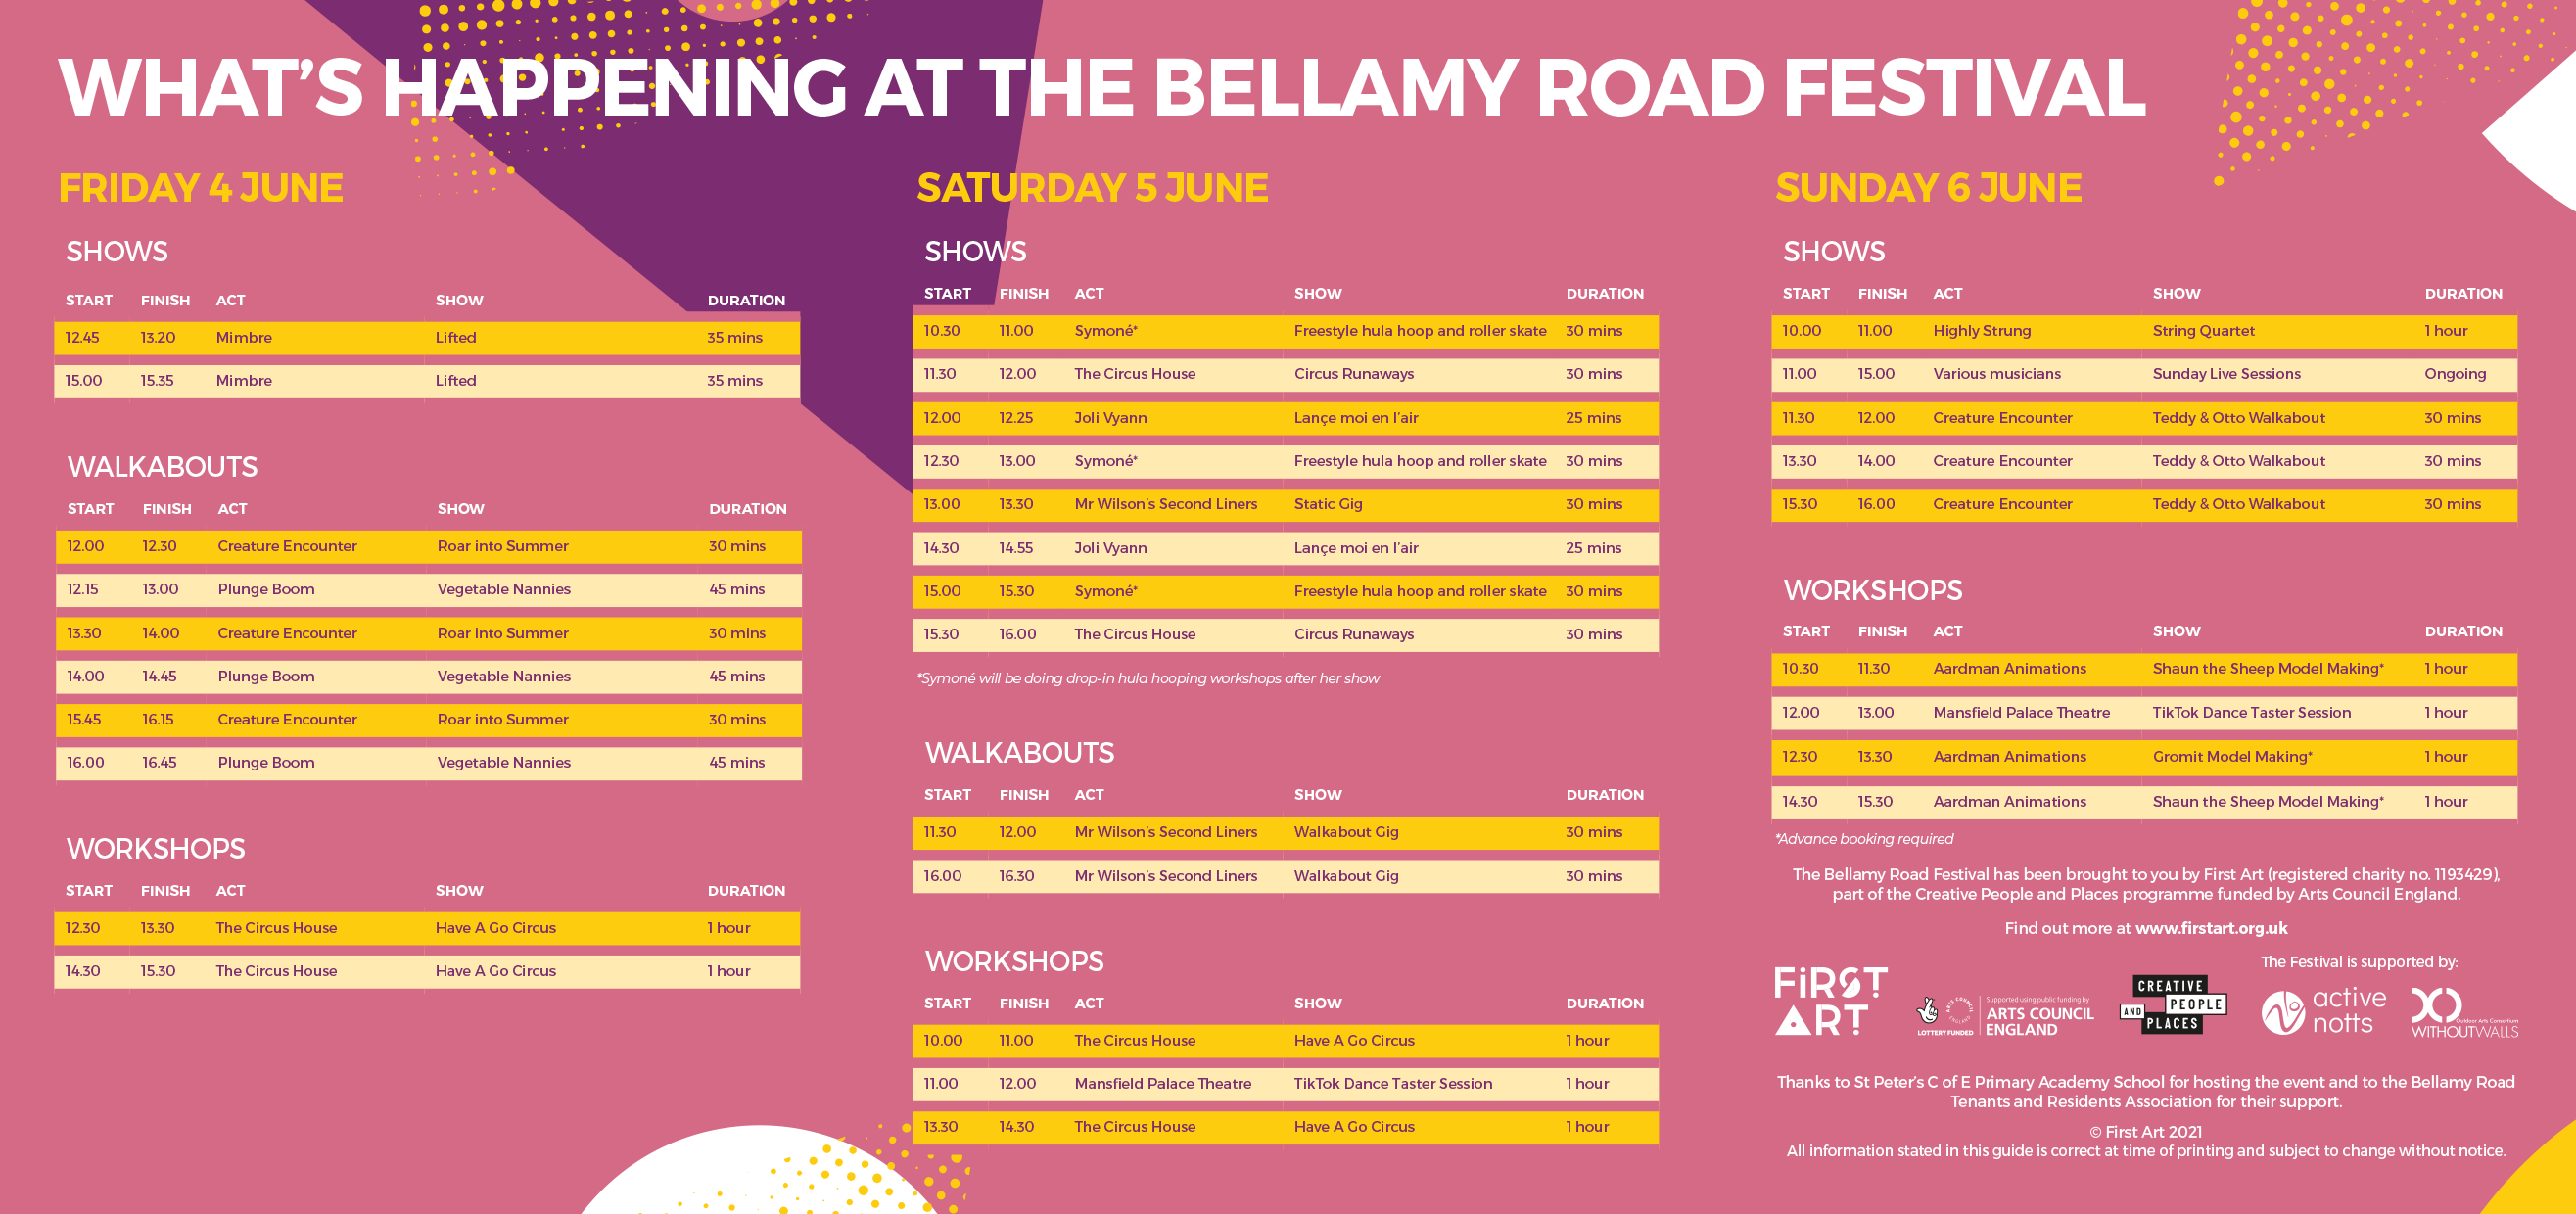 Timetable for The Bellamy Road Festival